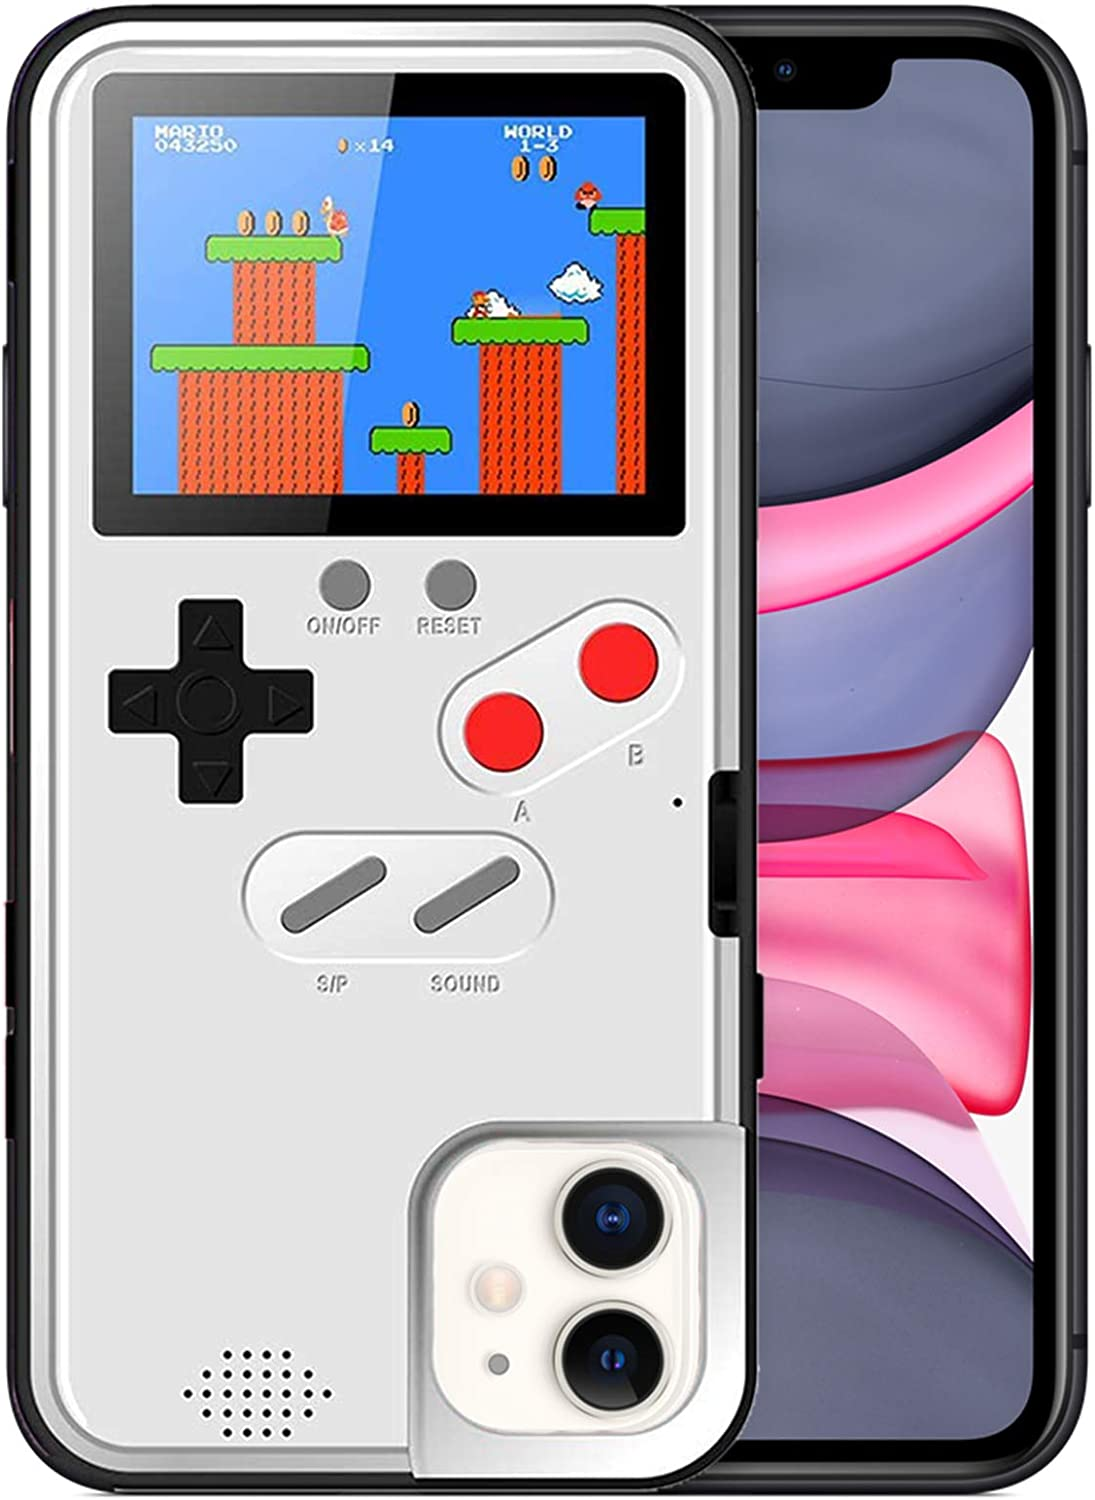 Amazon Com Gameboy Case For Iphone 6 6s 7 8 Chu9 Retro 3d Playable Gameboy Cover Case With 36 Classic Games Handheld Color Screen Video Game Console Case For Iphone White Iphone 6 6s 7 8 Electronics